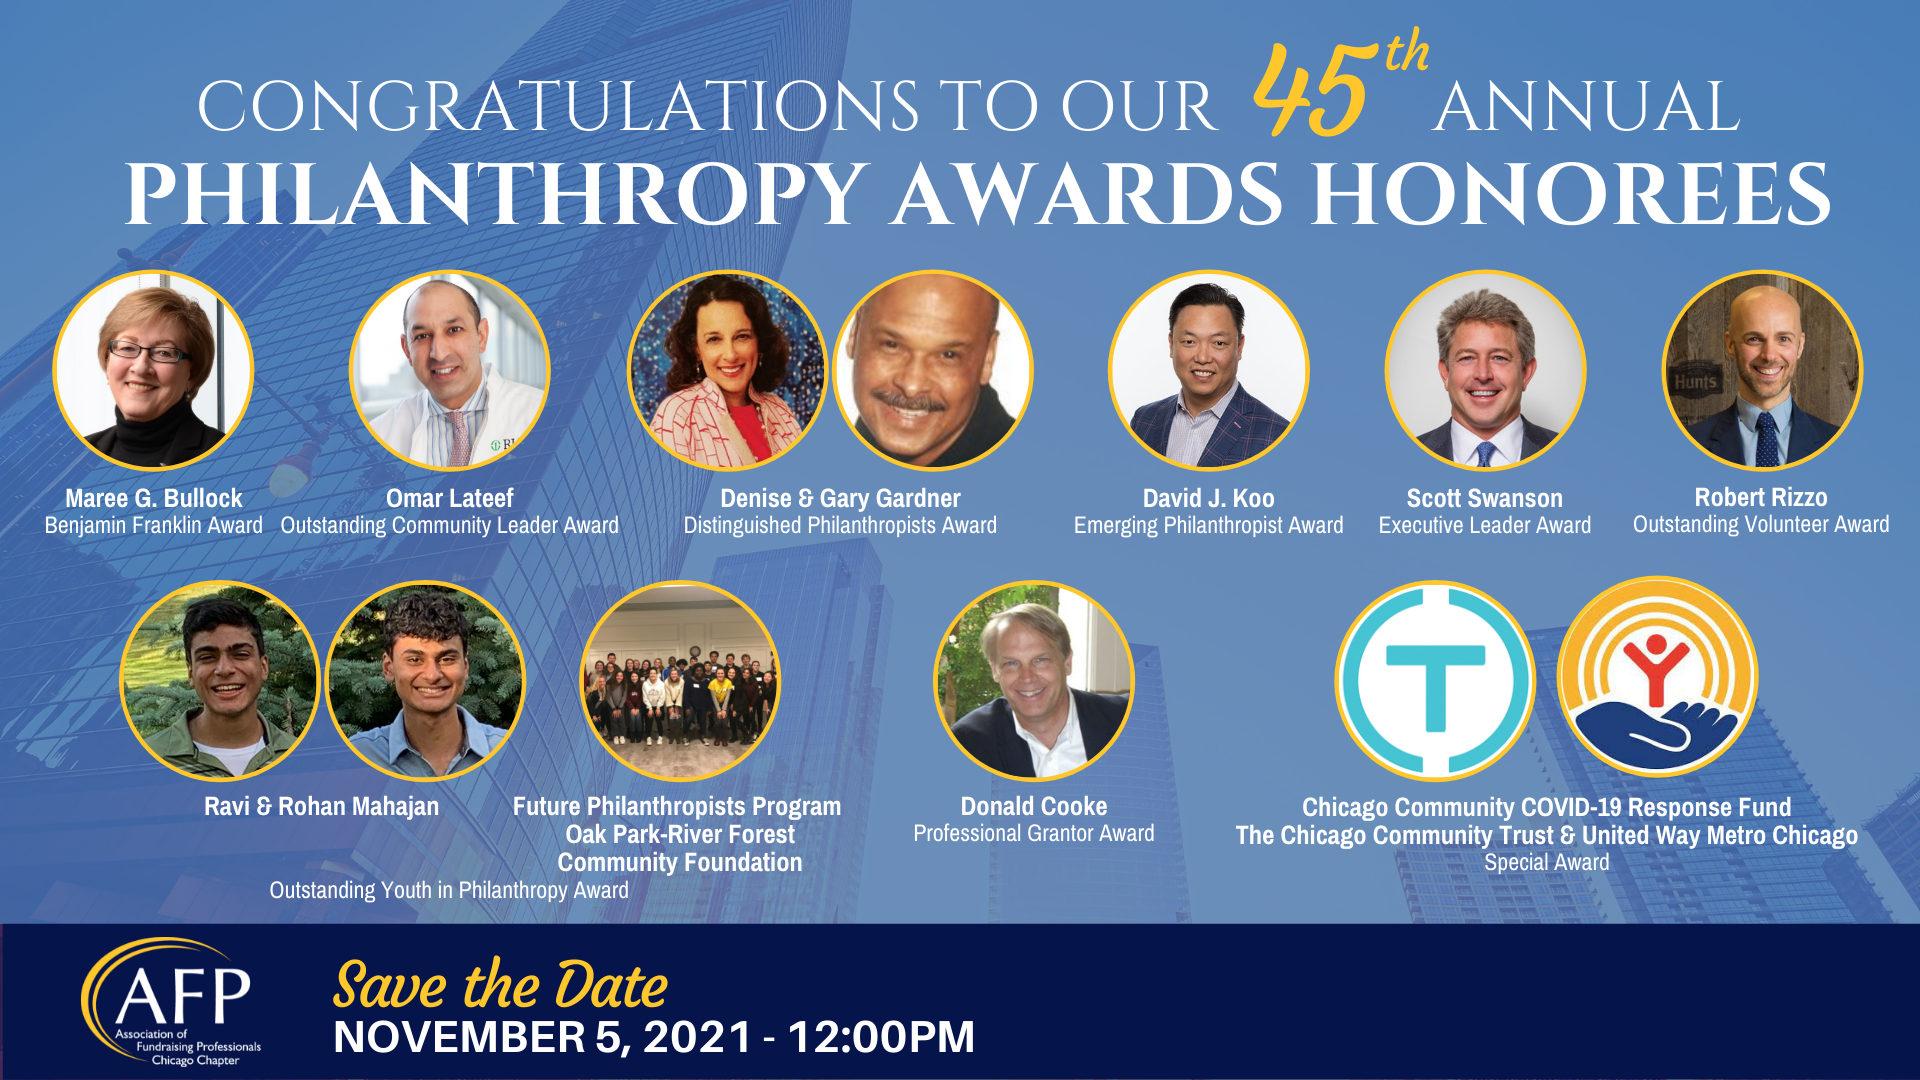 45th Annual Philanthropy Awards Honorees